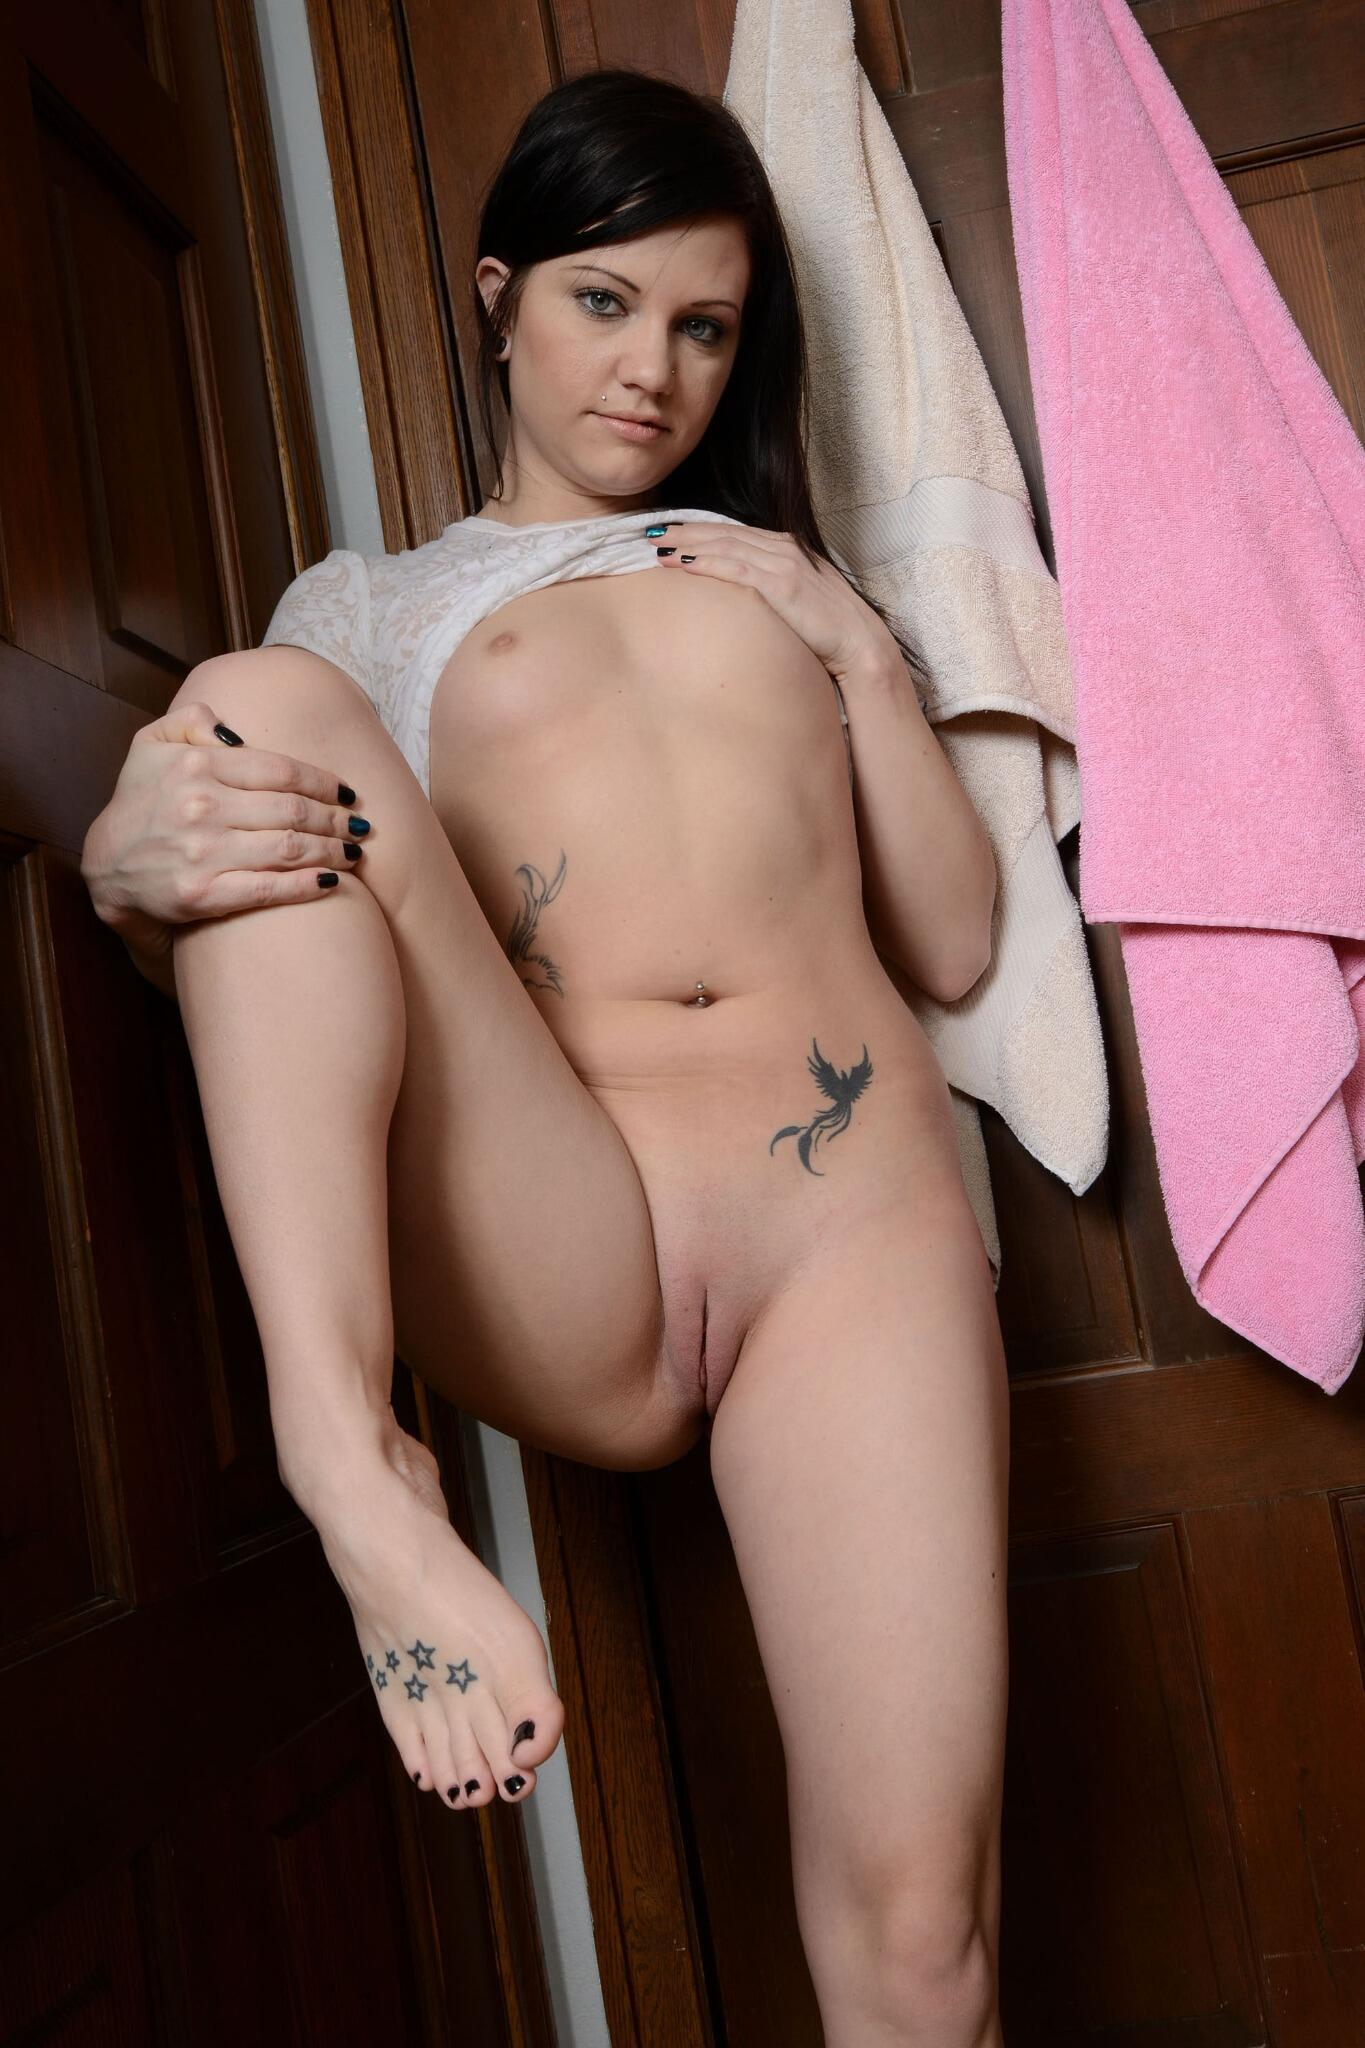 sagavi nude sex potos